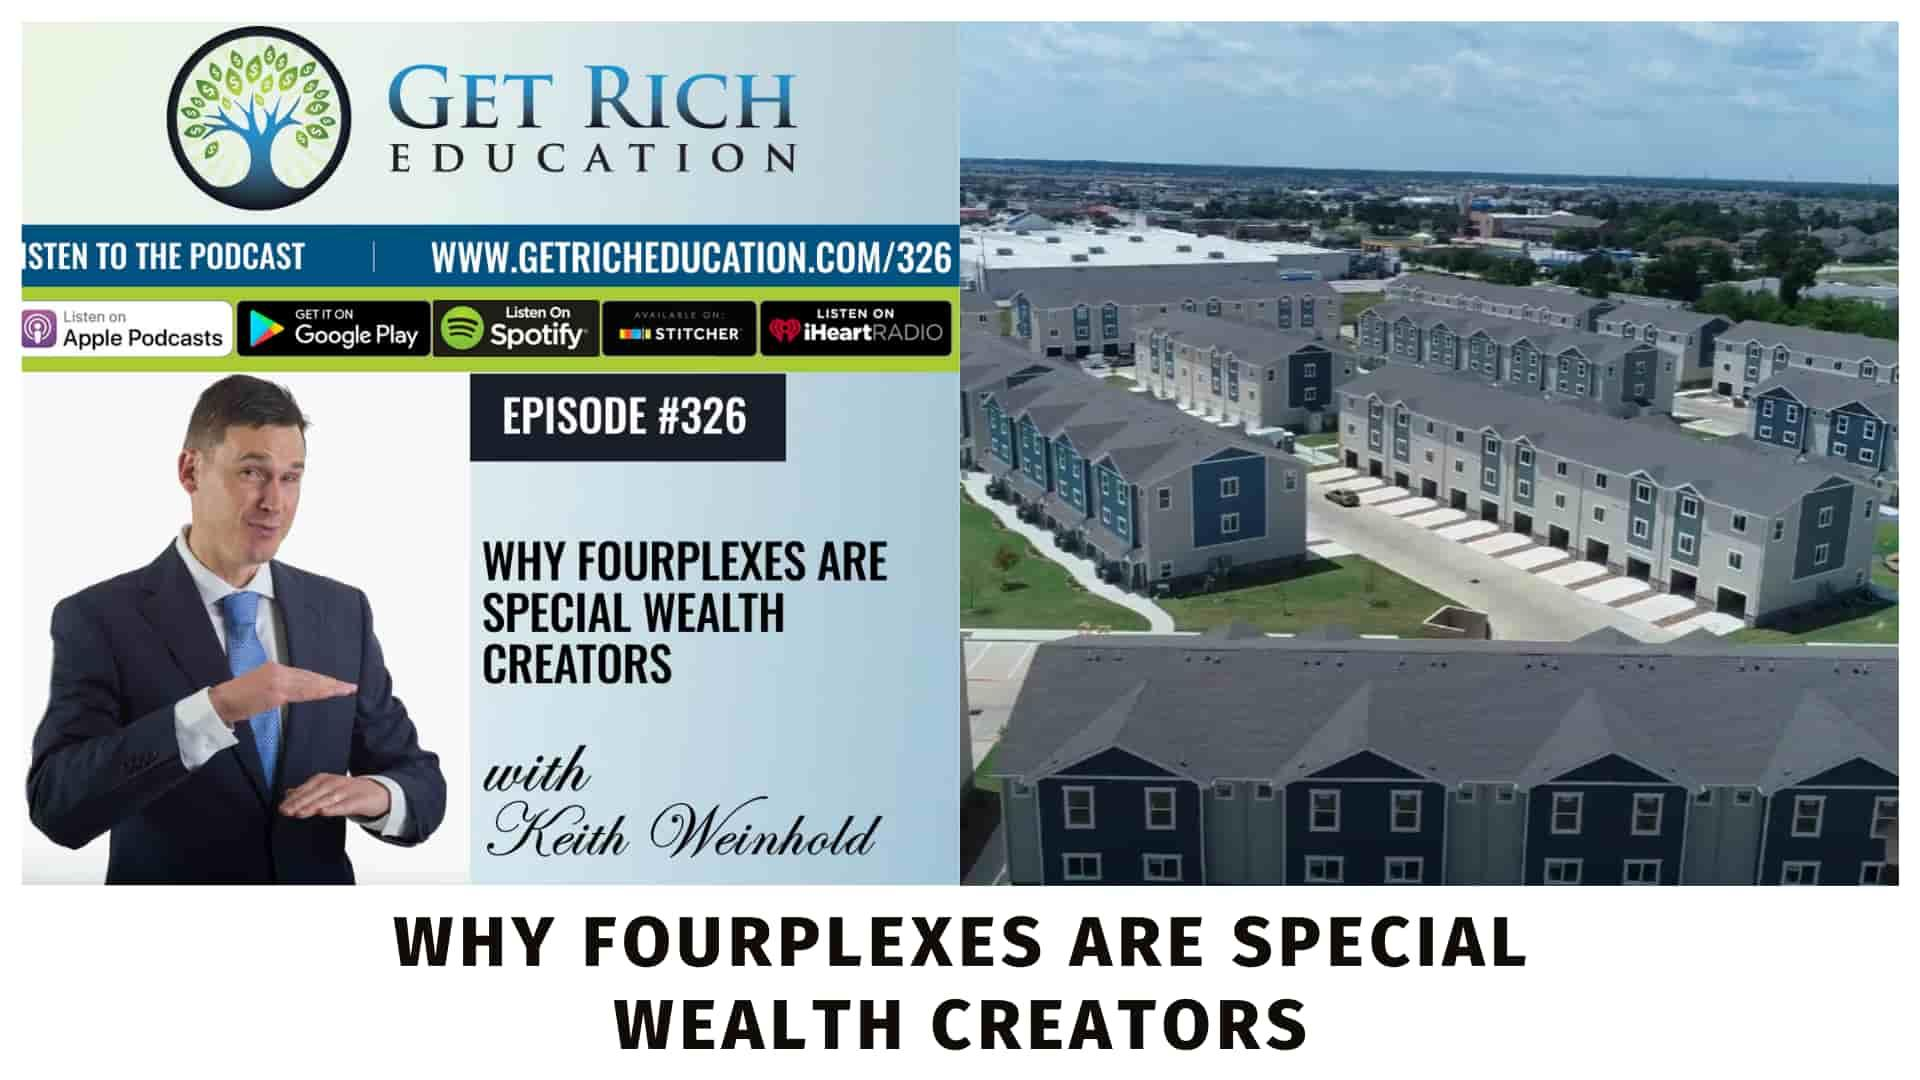 Episode on the Get Rich Education Podcast